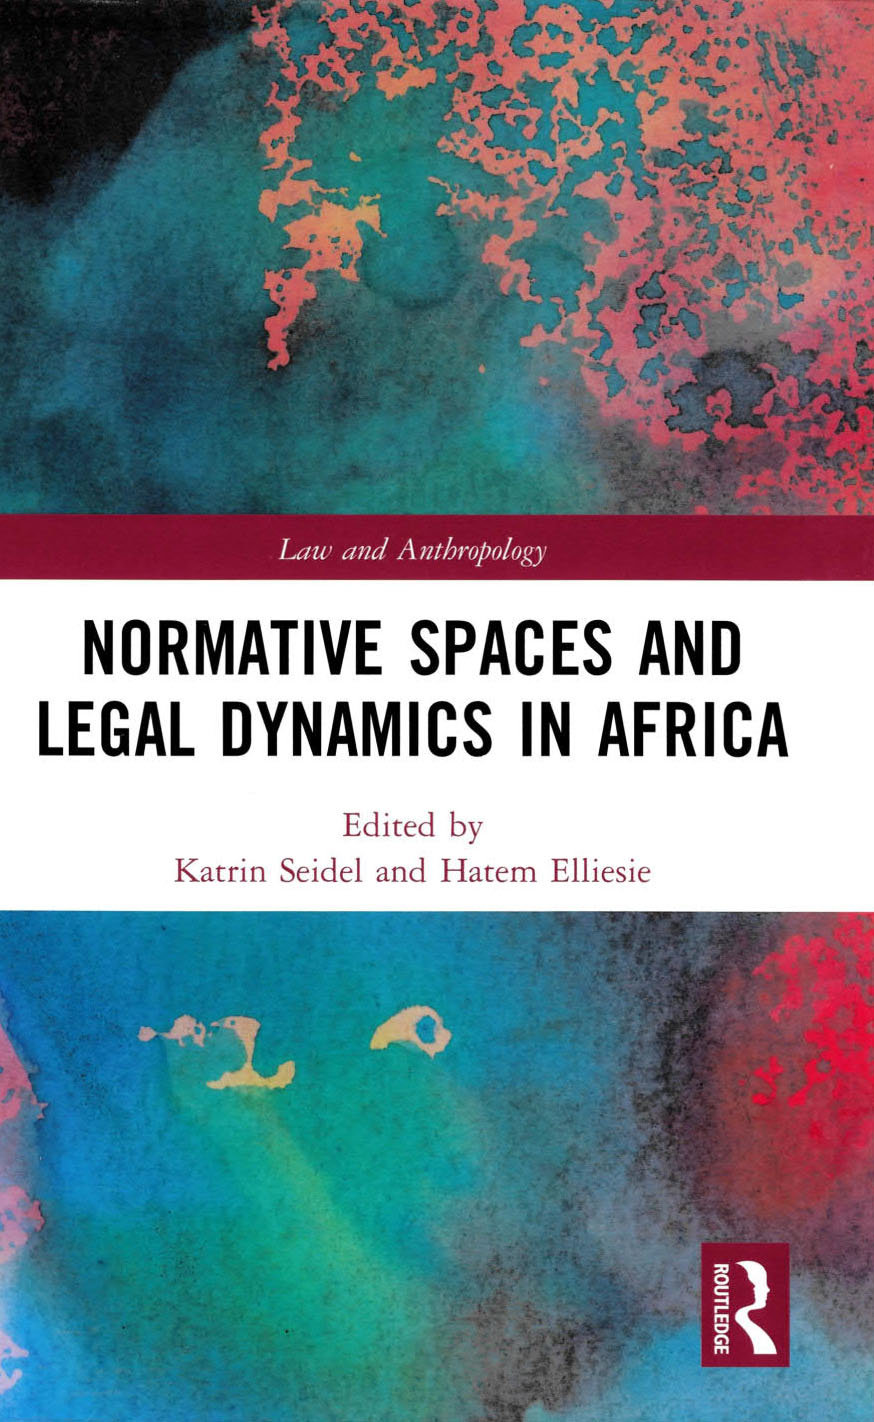 Normative Spaces and Legal Dynamics in Africa